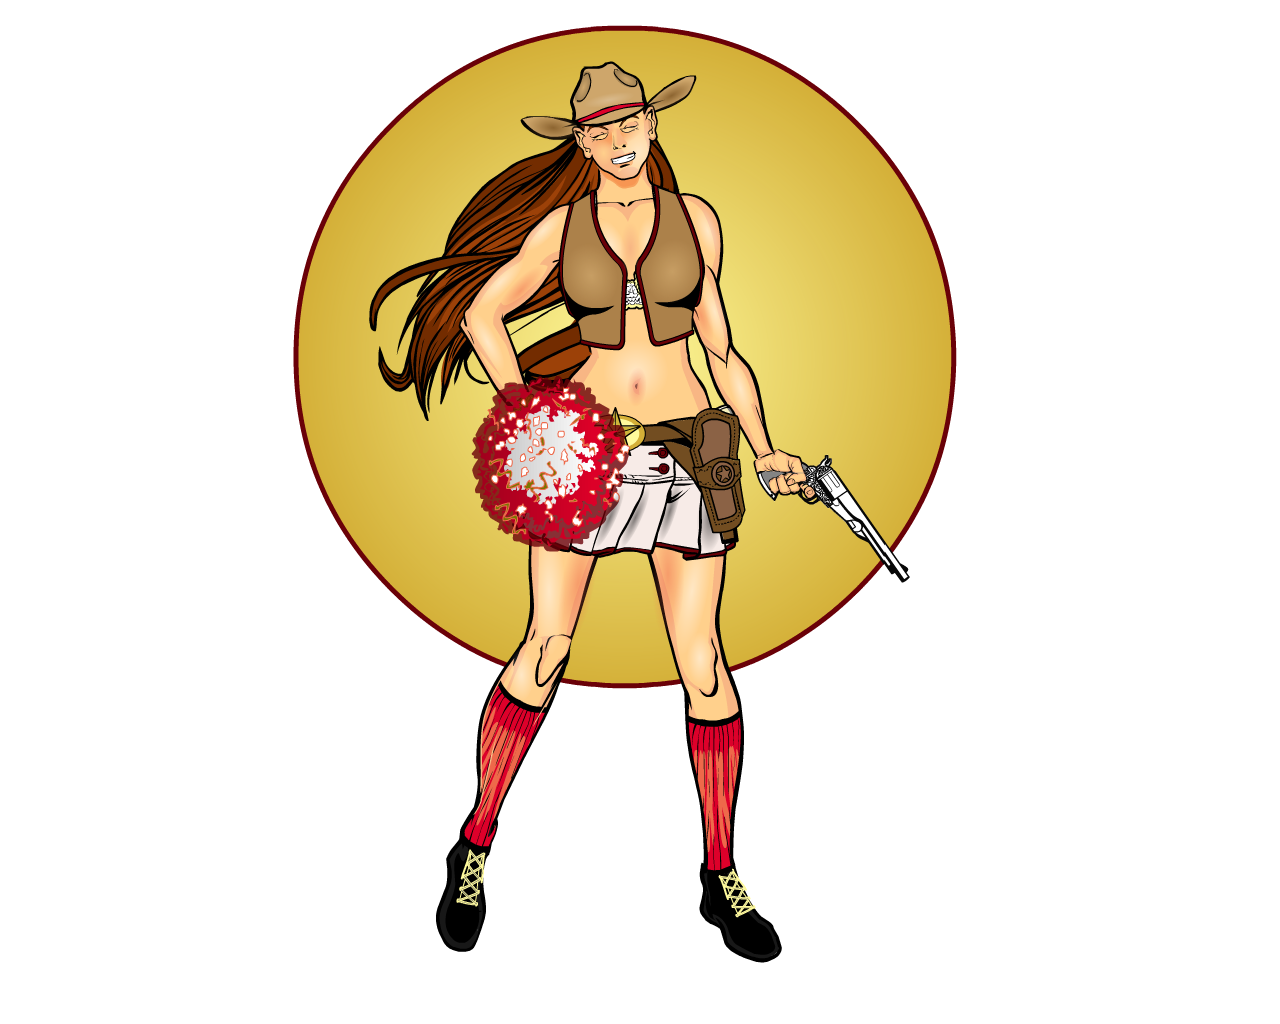 http://www.heromachine.com/wp-content/legacy/forum-image-uploads/headlessgeneral/2012/04/Cheerleader-Cowgirl.png